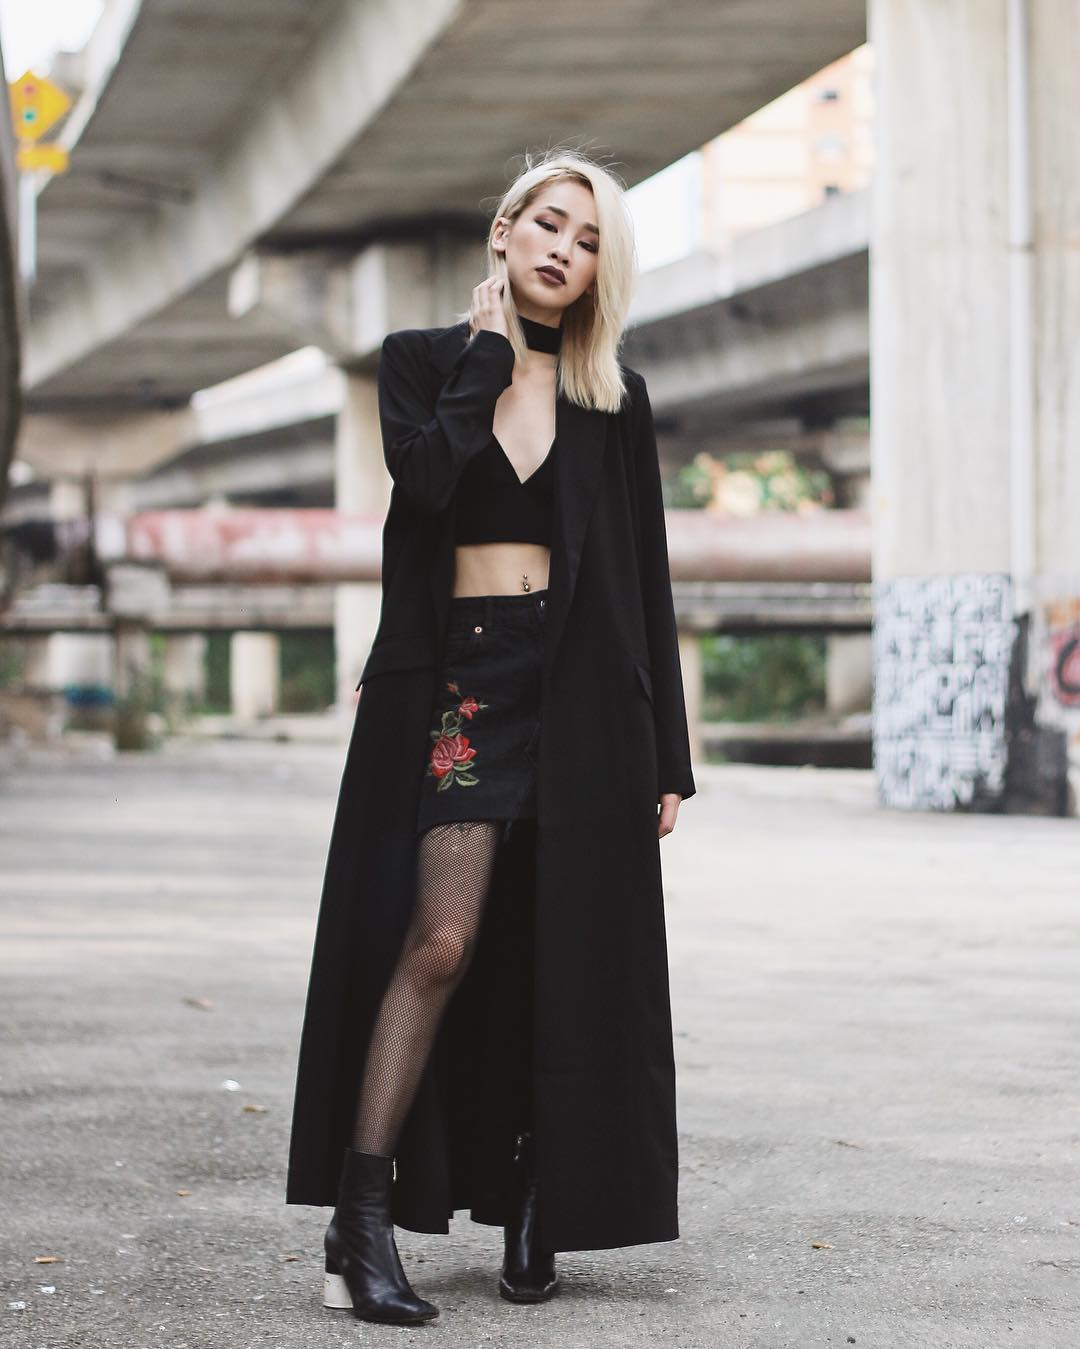 10 KL style influencers to follow on Instagram